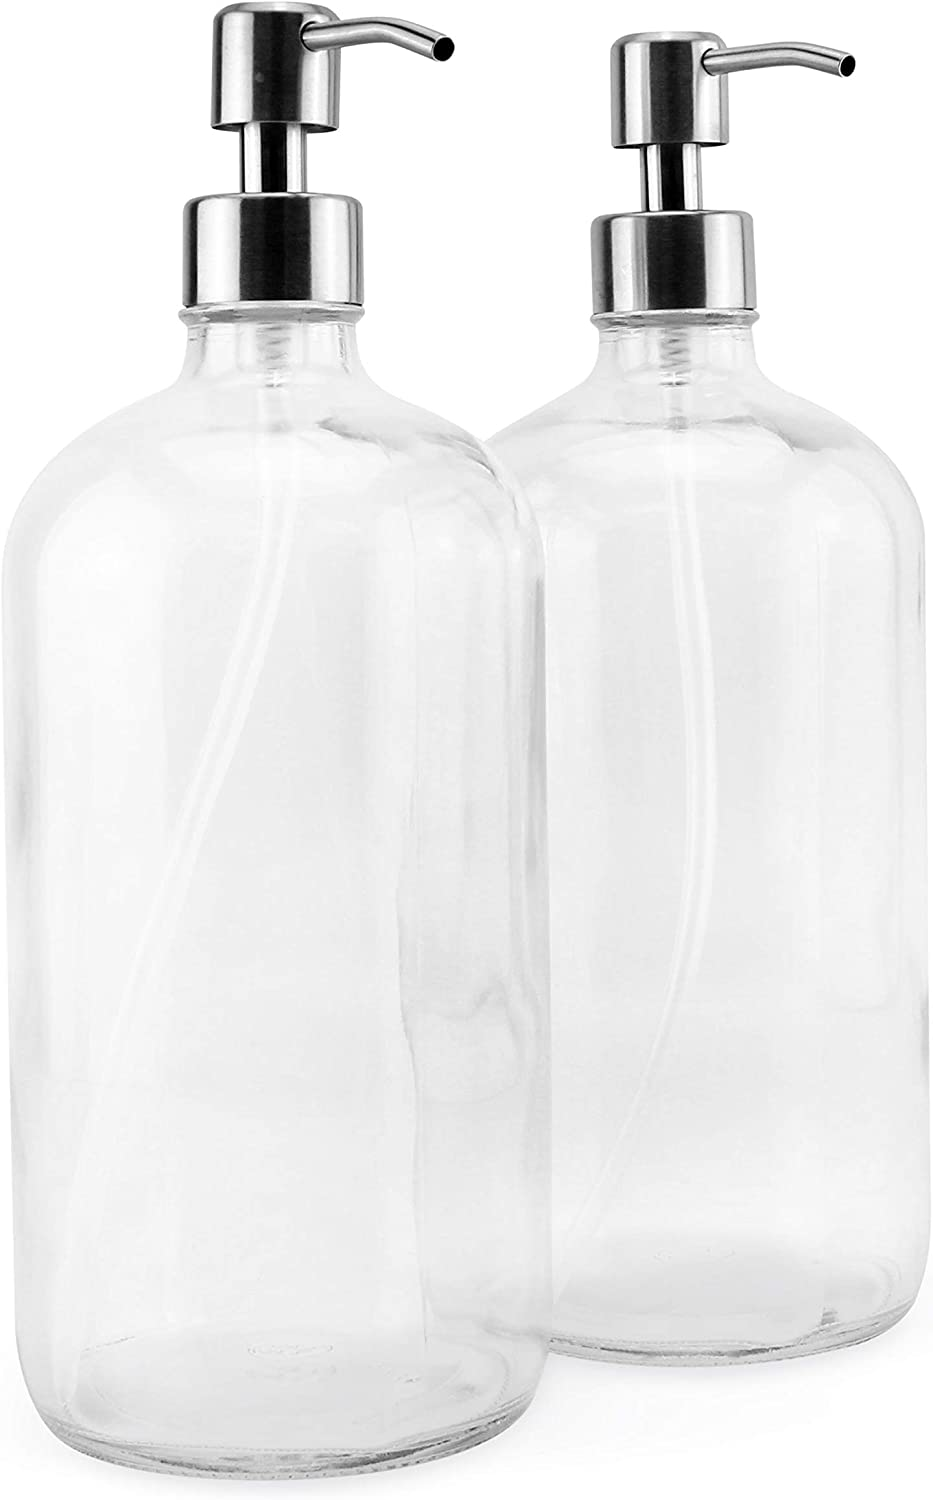 Cornucopia 32oz Glass Pump Bottles with Stainless Steel Pump (2-Pack); Economy Size Dispenser for Massage Oils, Lotions, Liquid Soaps, Hand Sanitizers